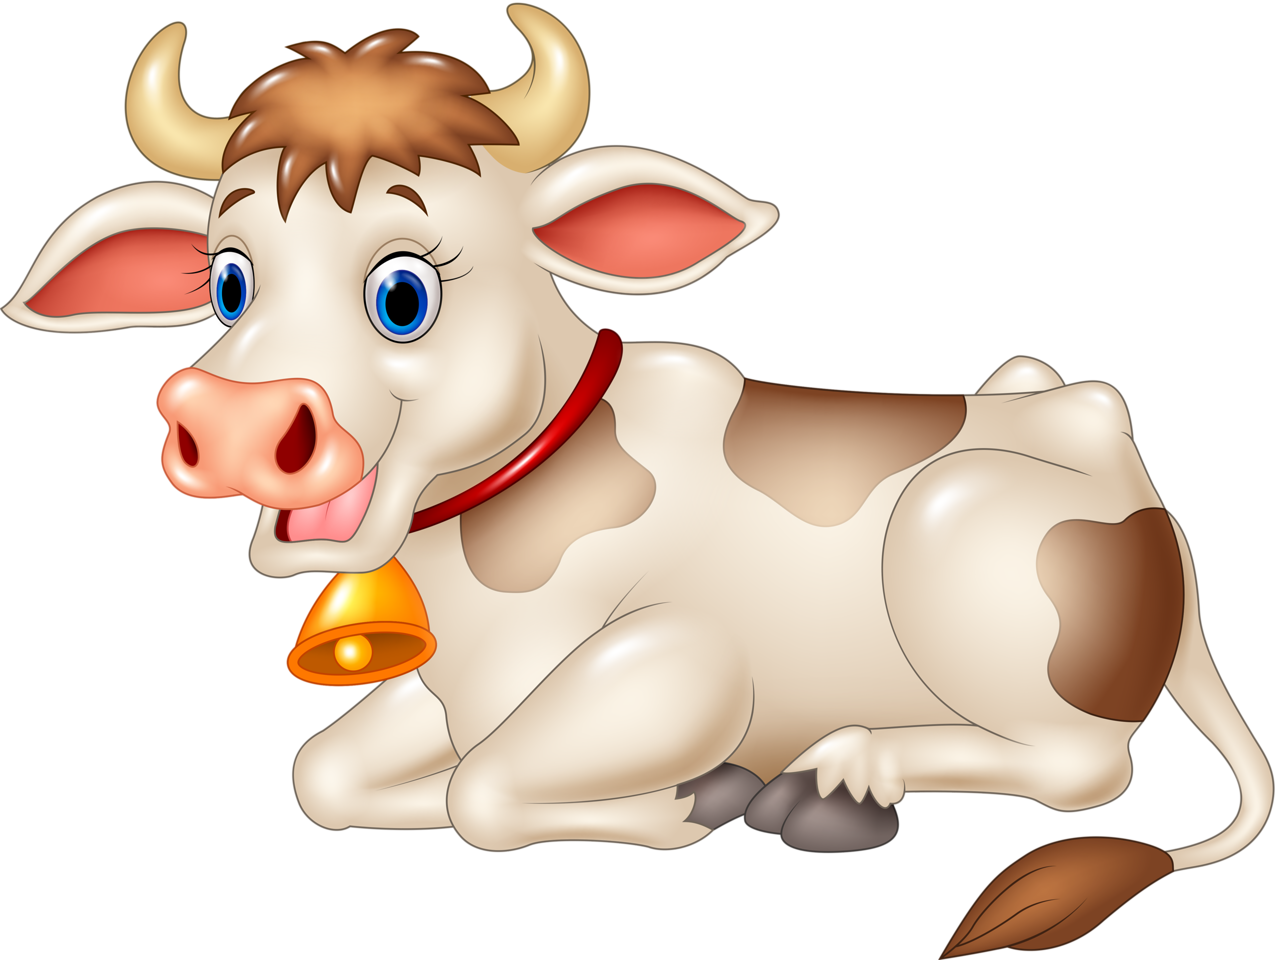 Funny cartoon animals vector. Farmers clipart cattle farming